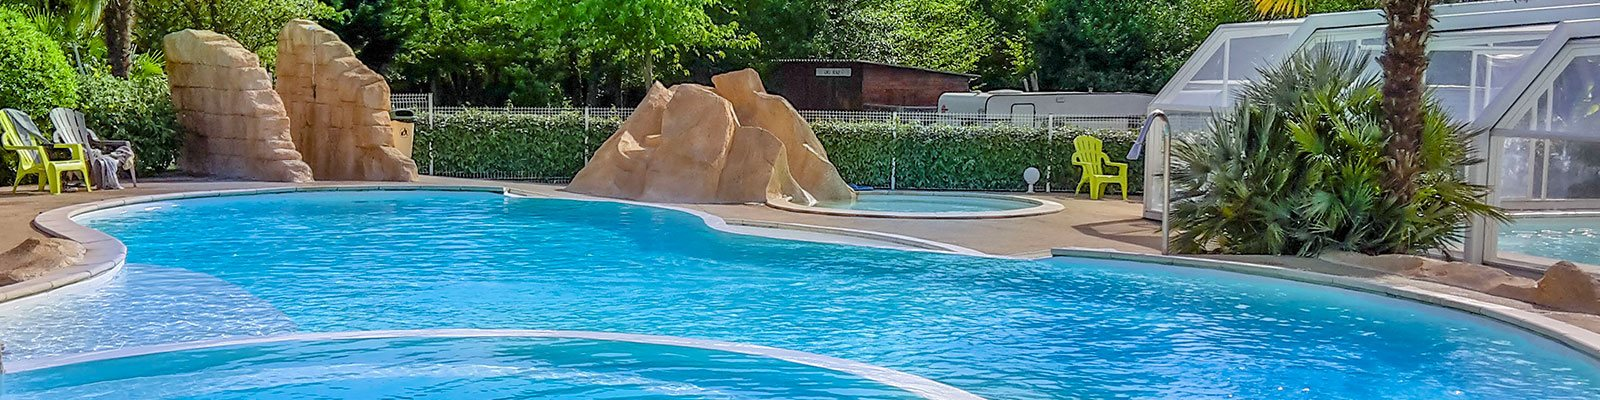 camping with swimming pool on the beach Landes